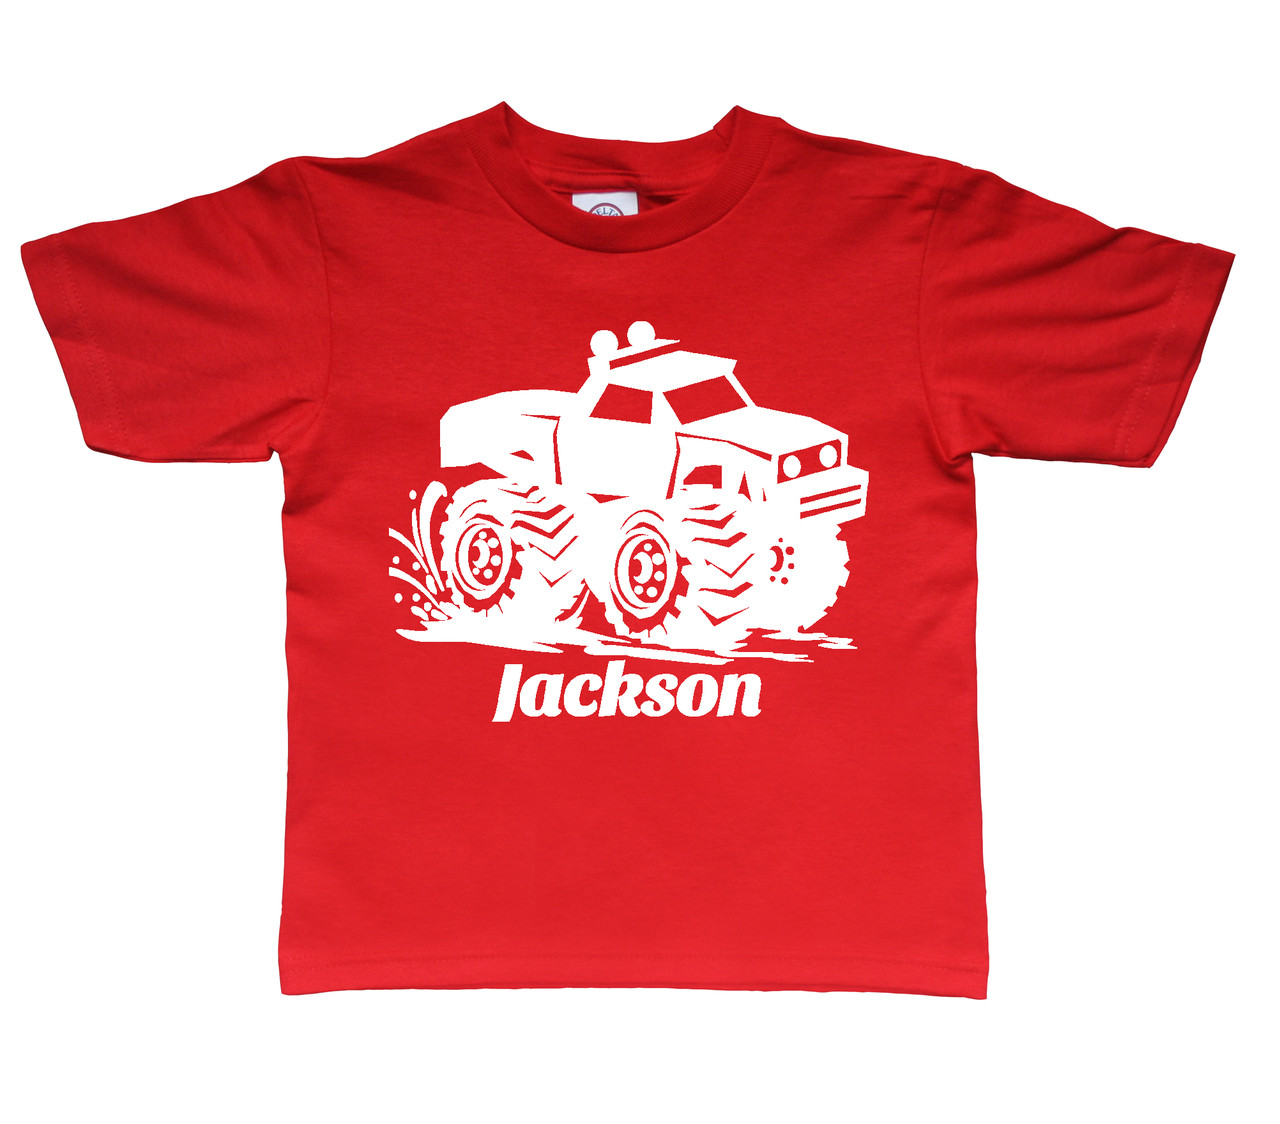 Mud monster truck white print on red tee